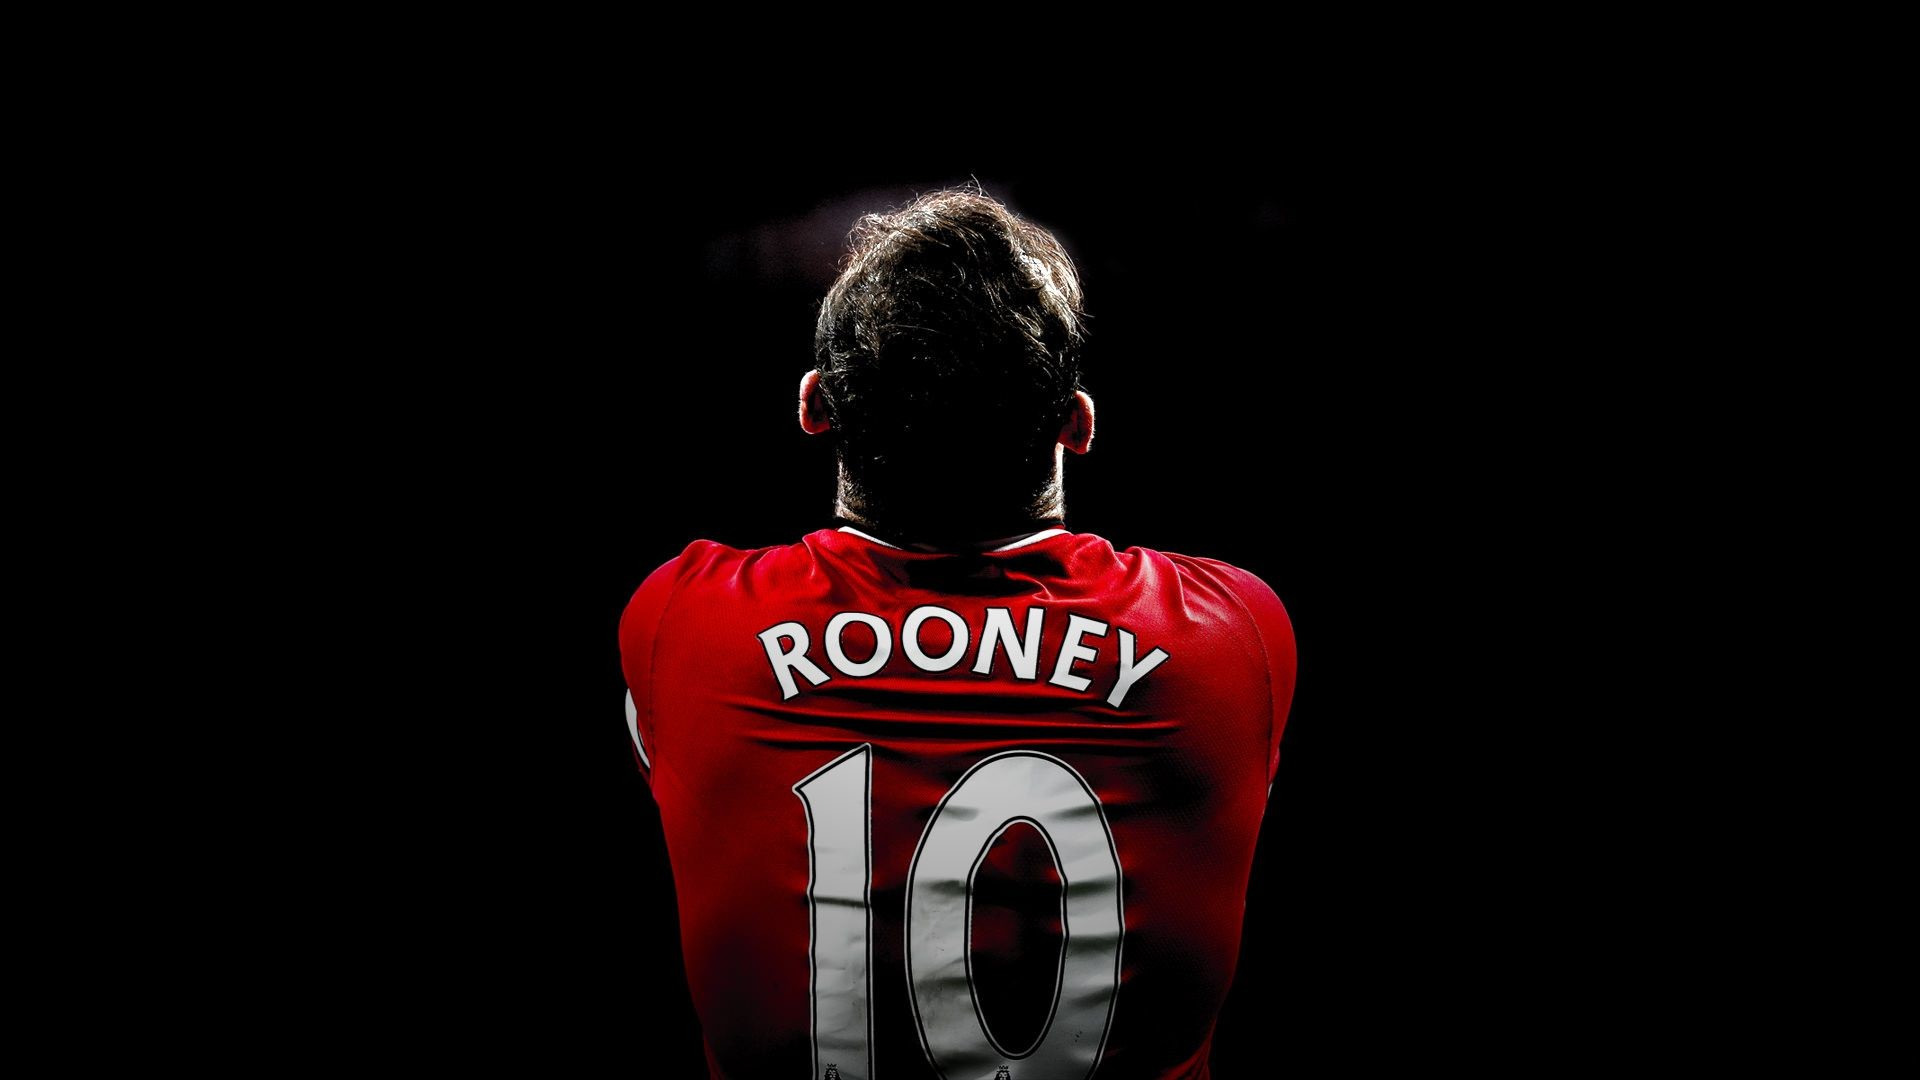 Mu wallpaper for android impremedia manchester united logo wallpaper manchester united logo wallpapers wallpaper voltagebd Choice Image